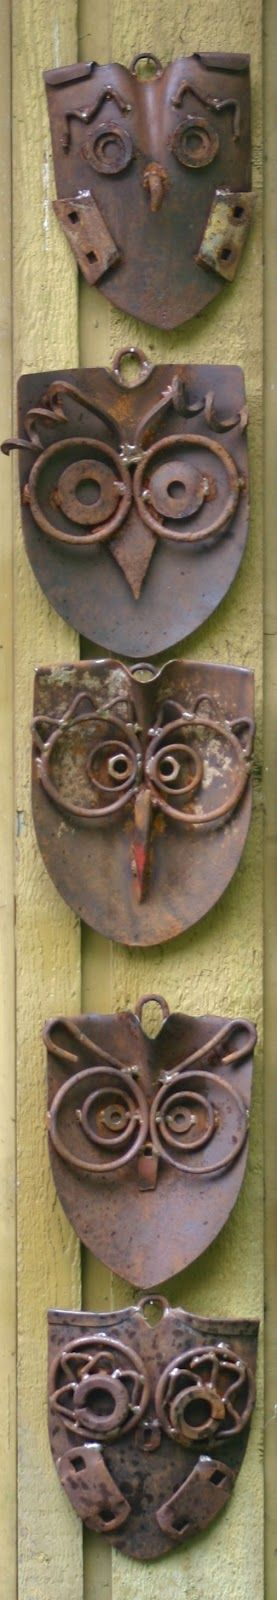 junk art owls. Yard art